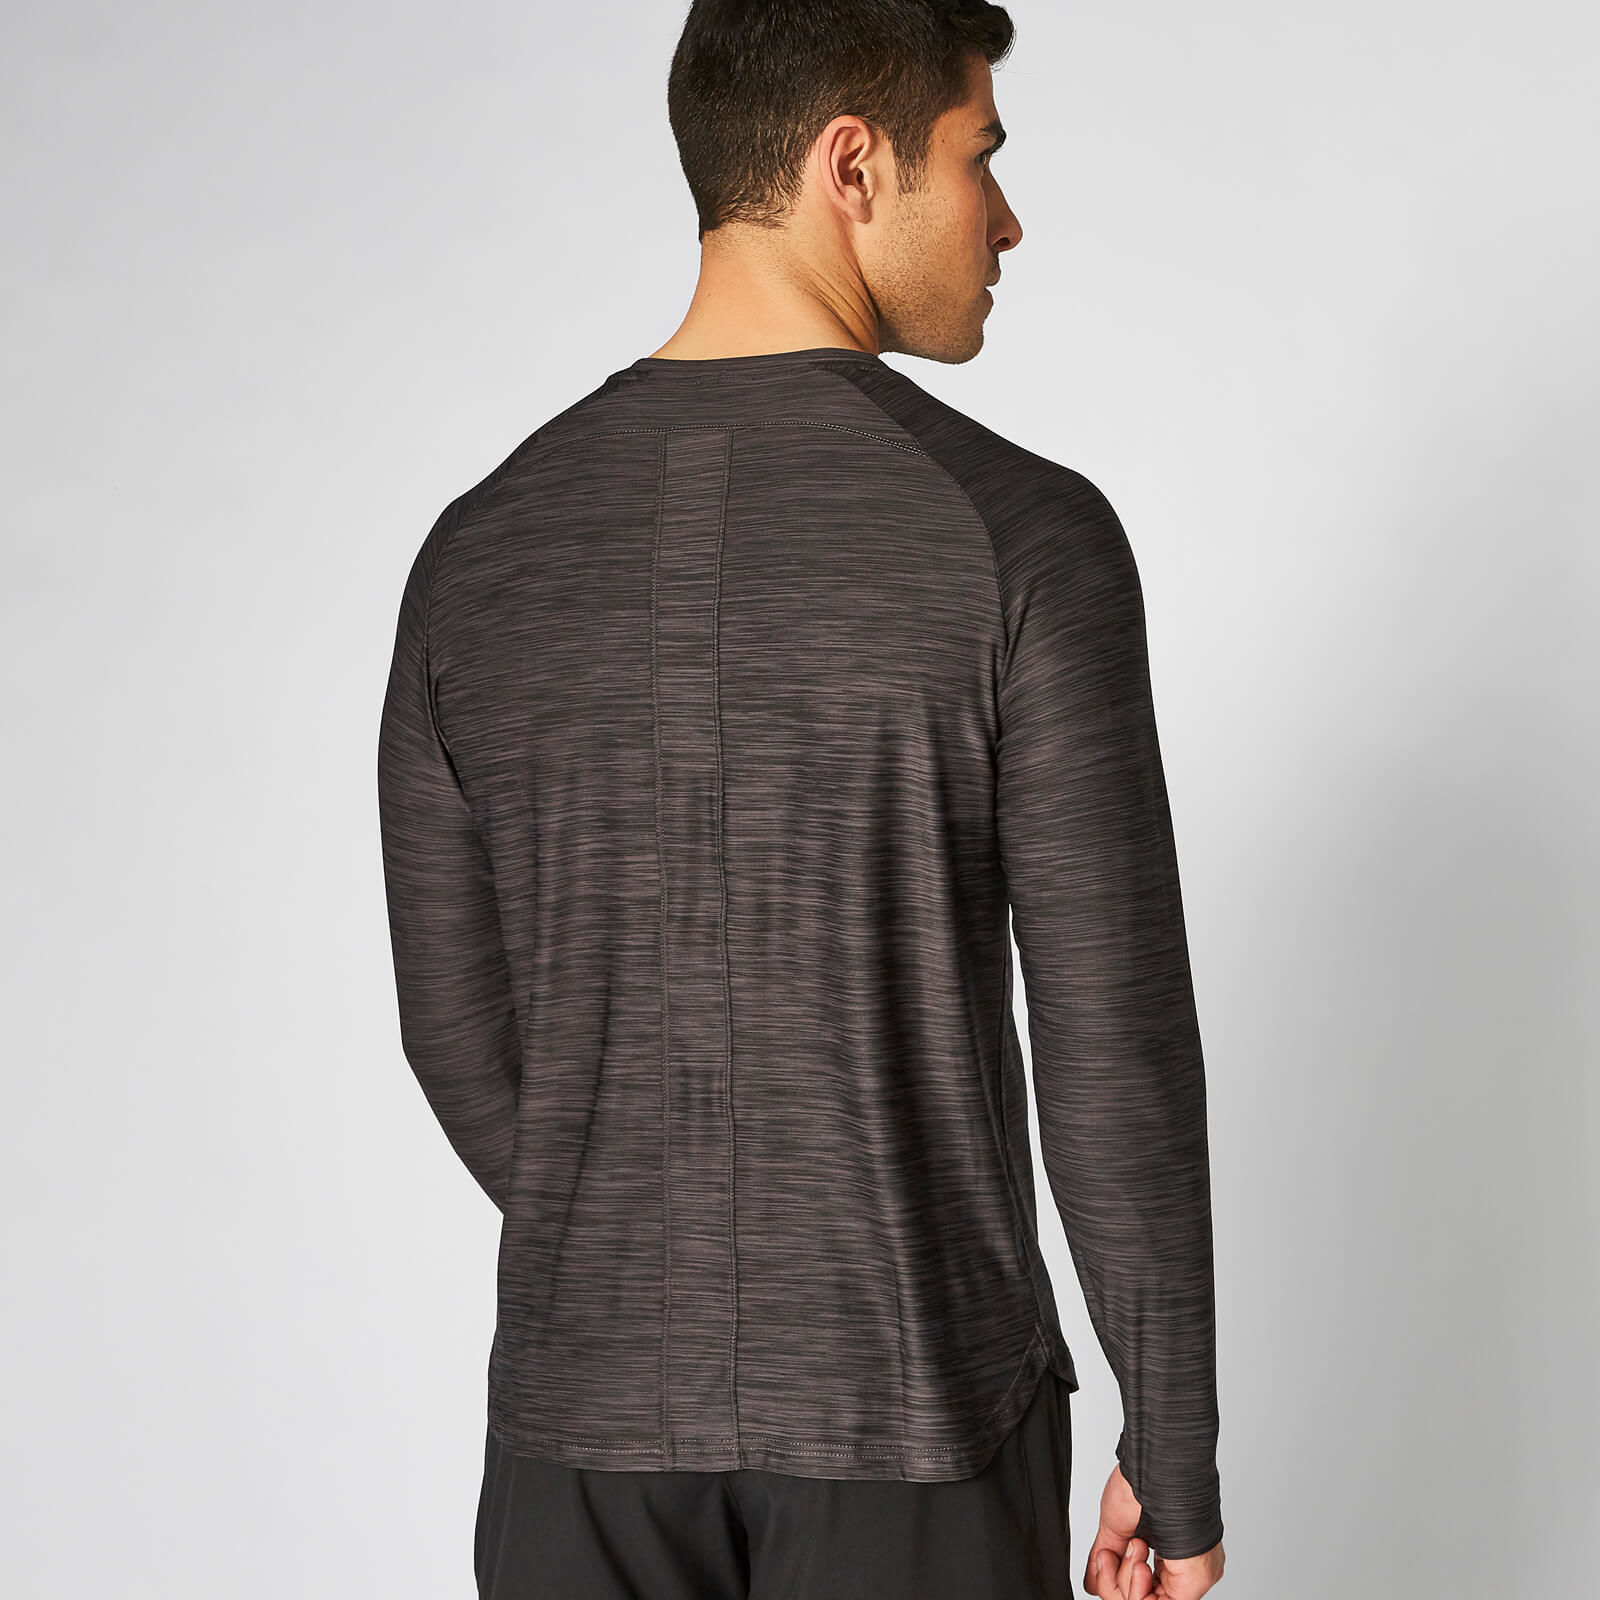 T-Shirt Dry-Tech Infinity manches longues – Ardoise